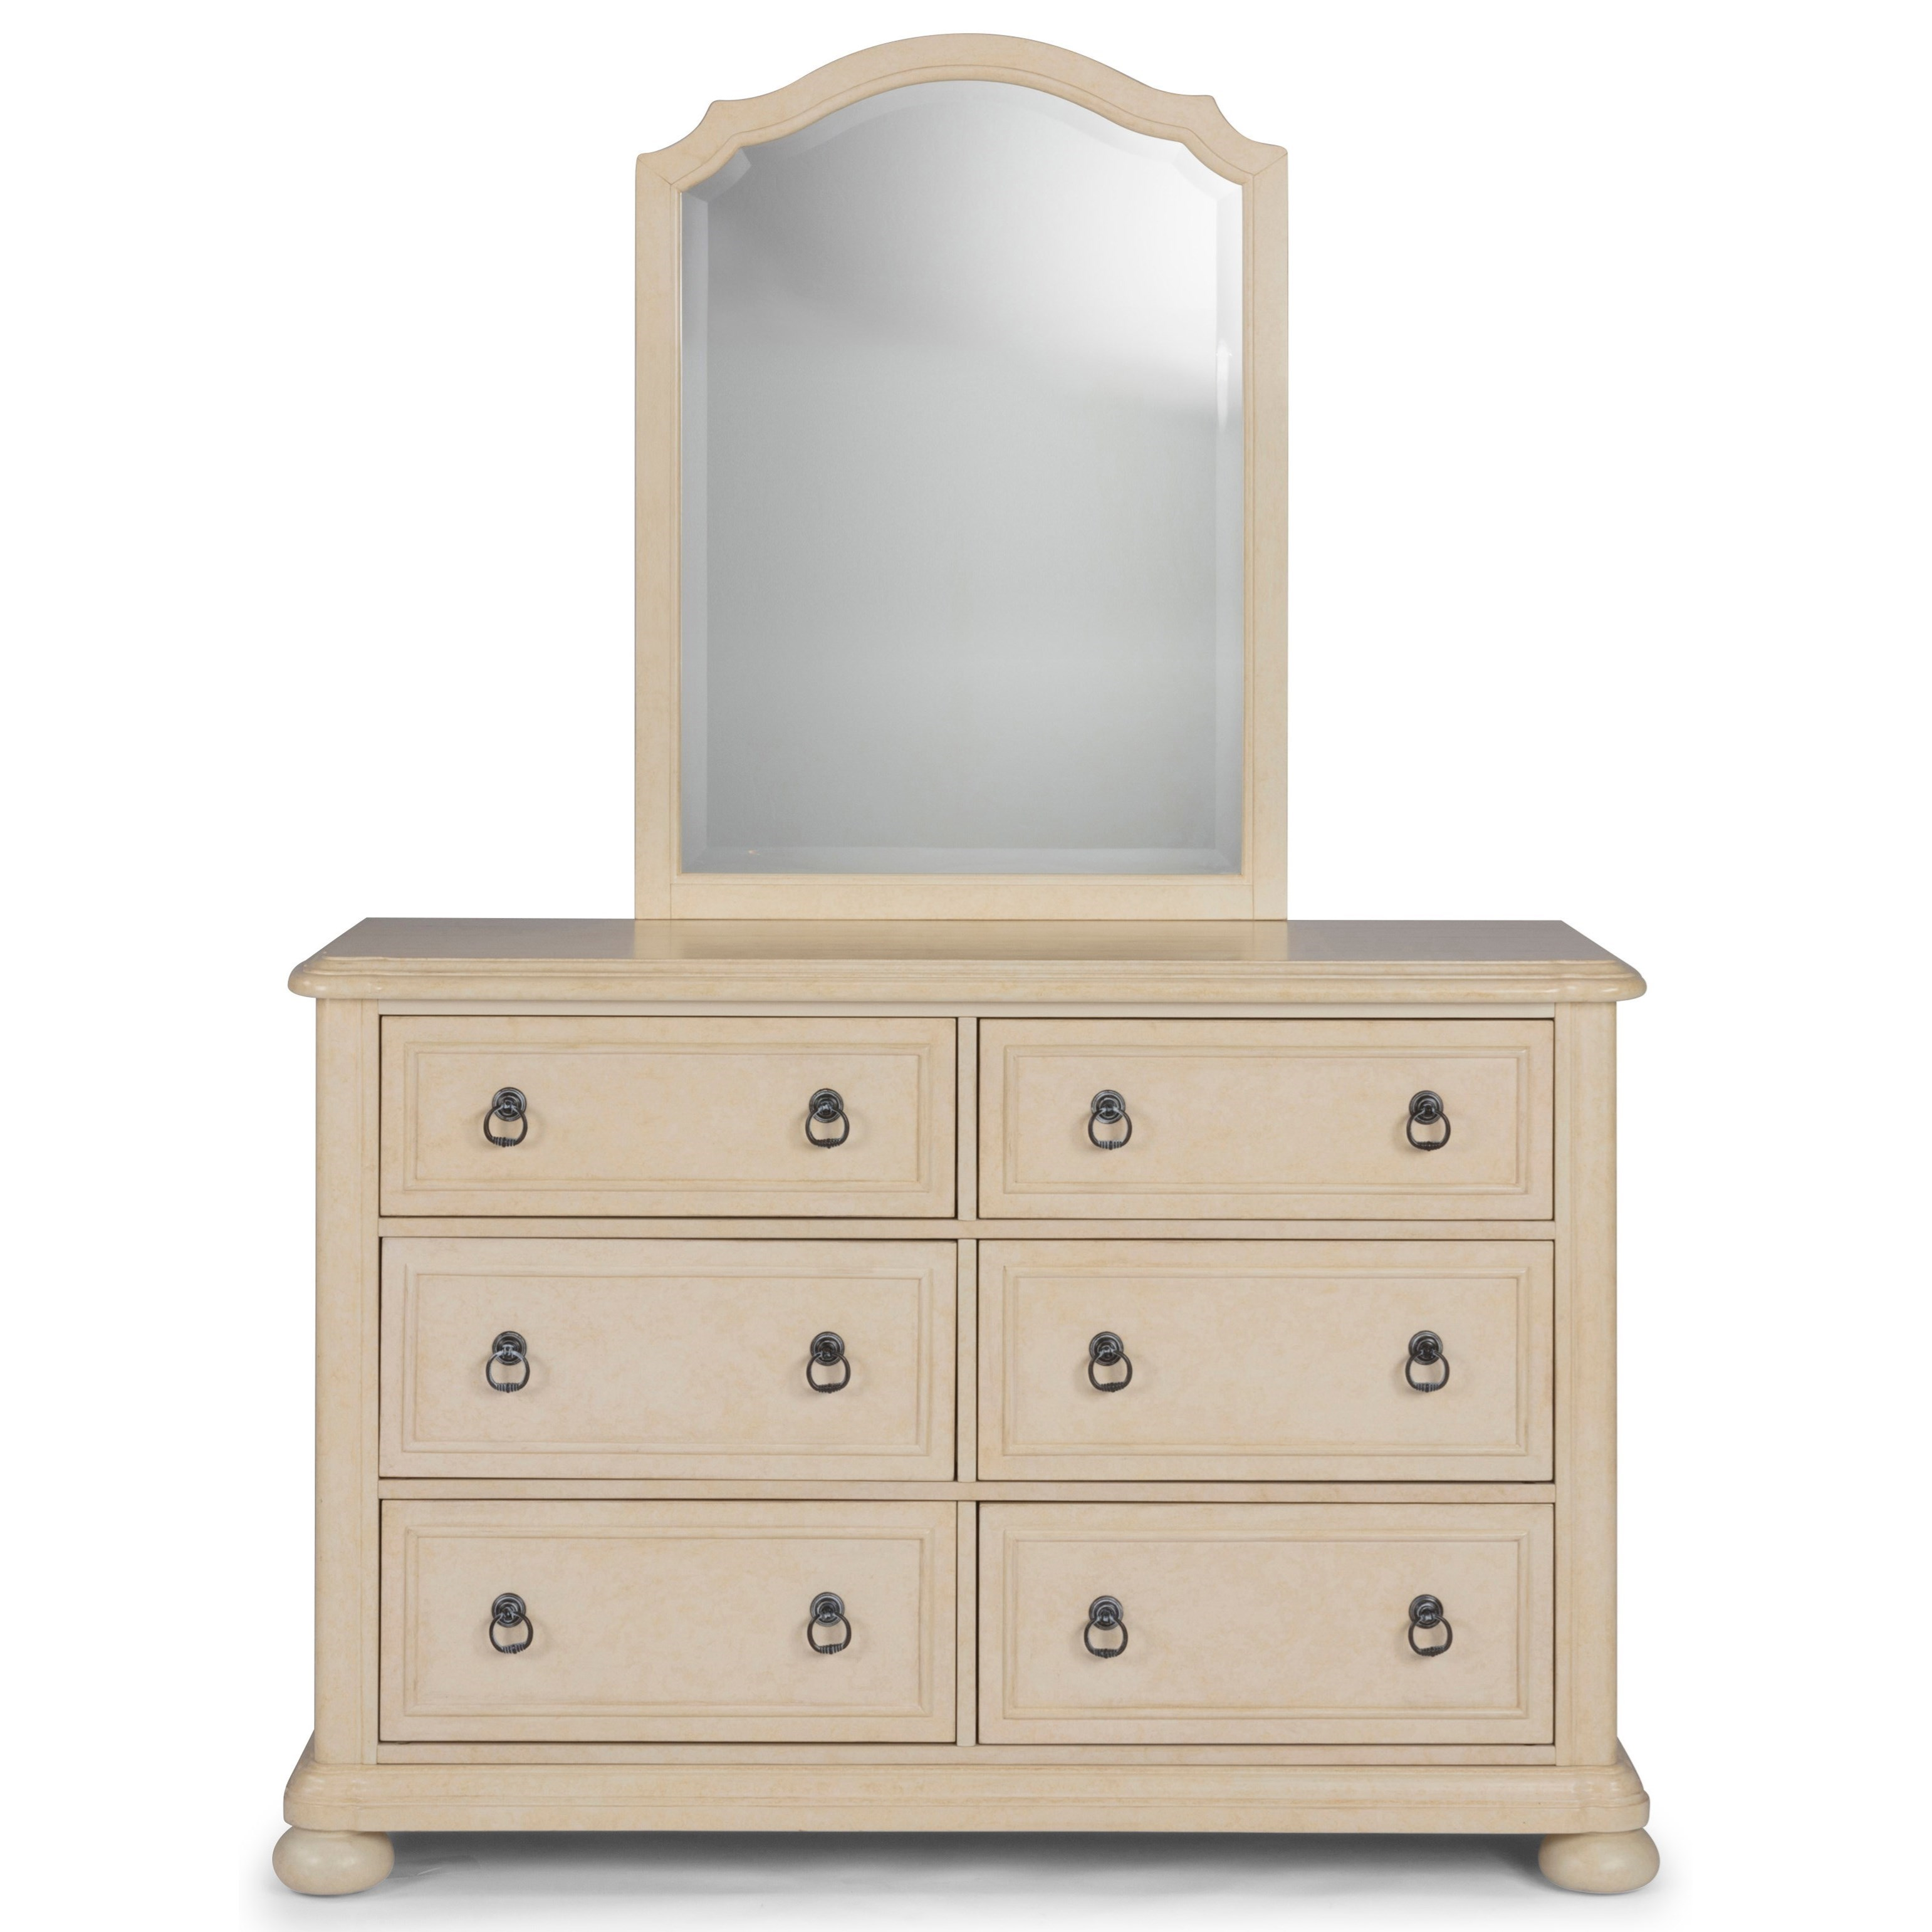 Provence Dresser & Mirror by Homestyles at Northeast Factory Direct